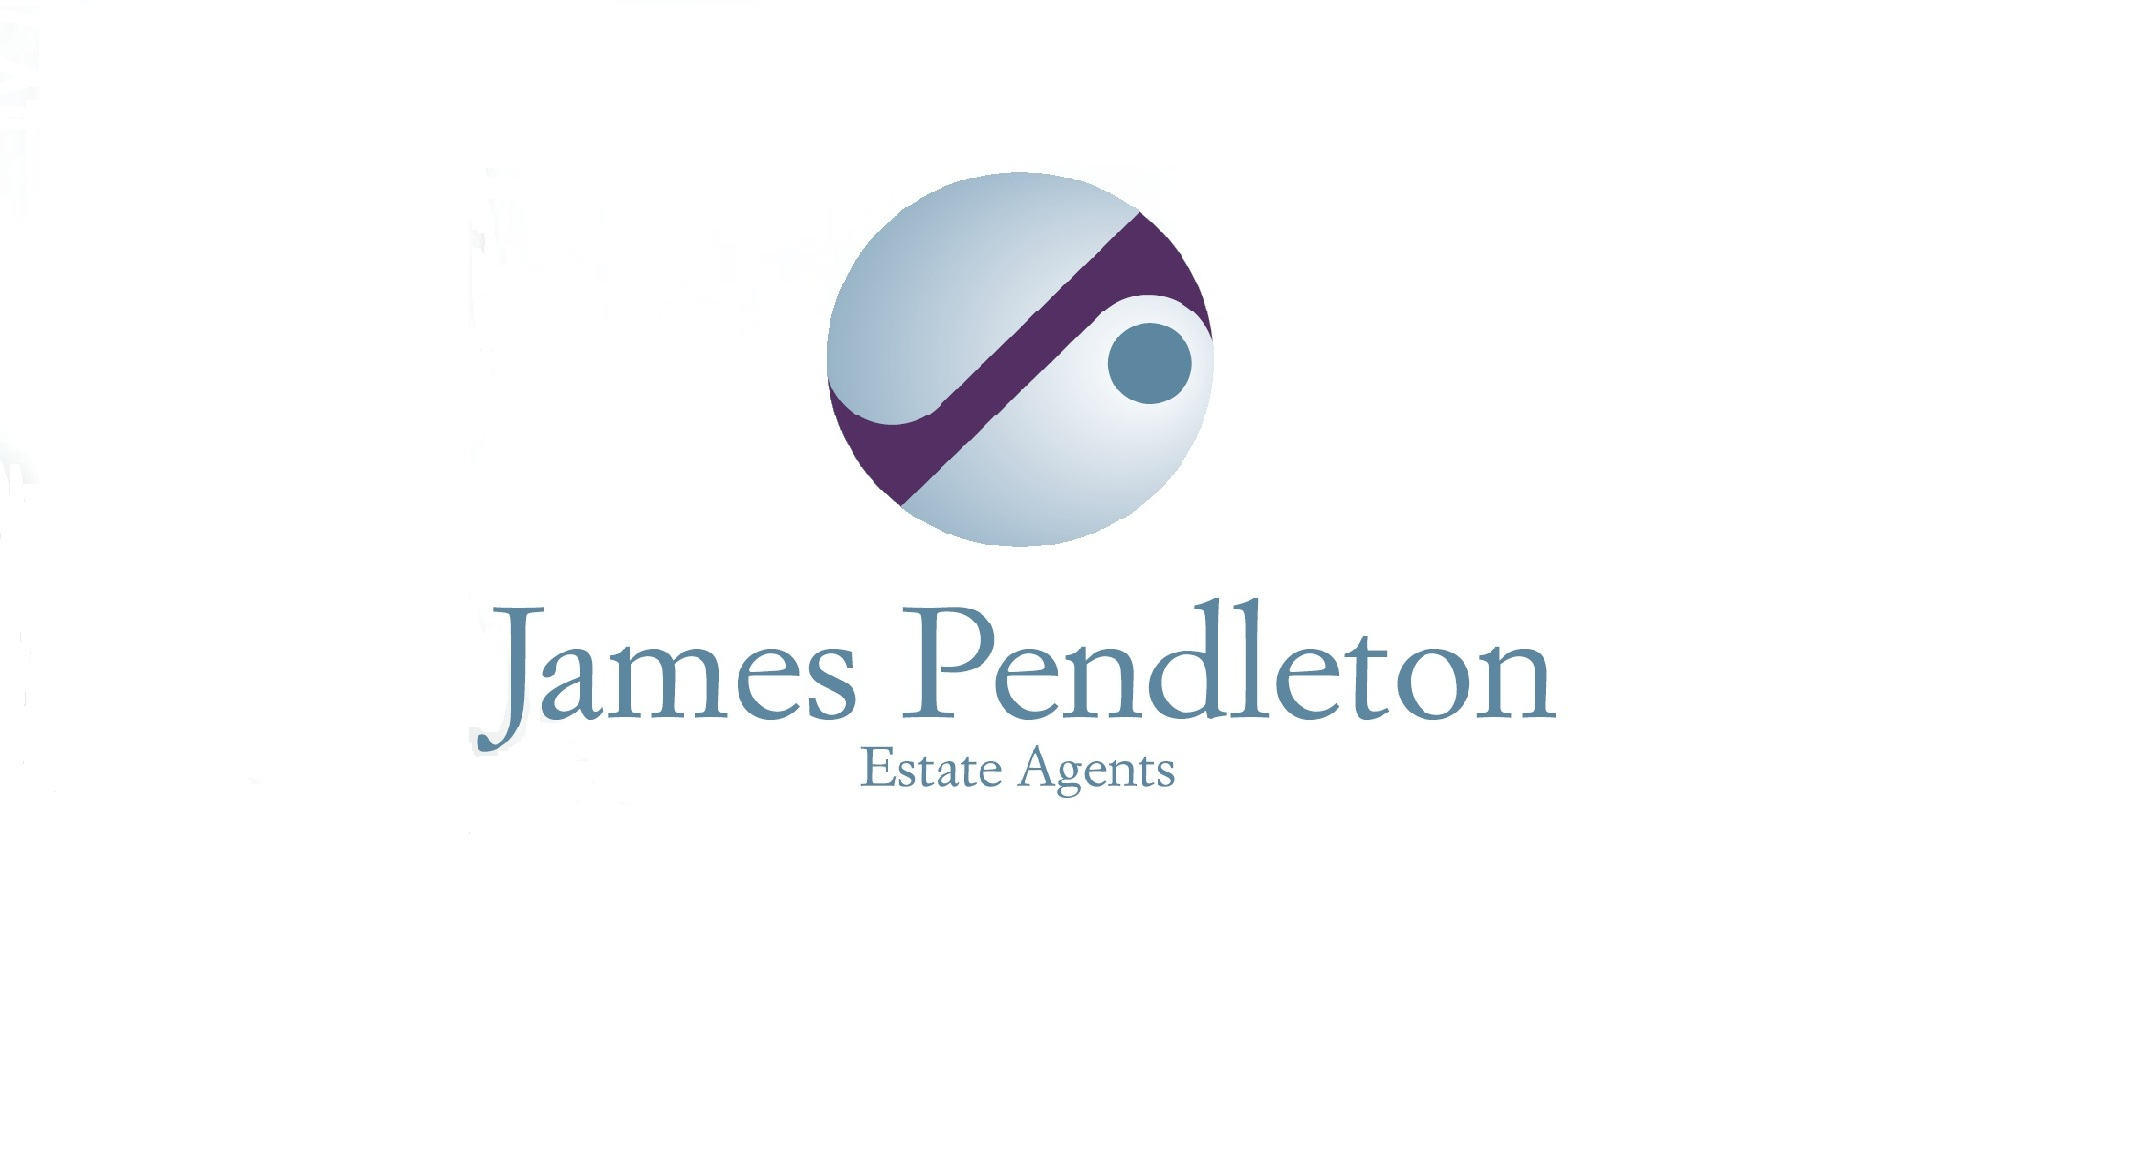 Estate Agents in South West London